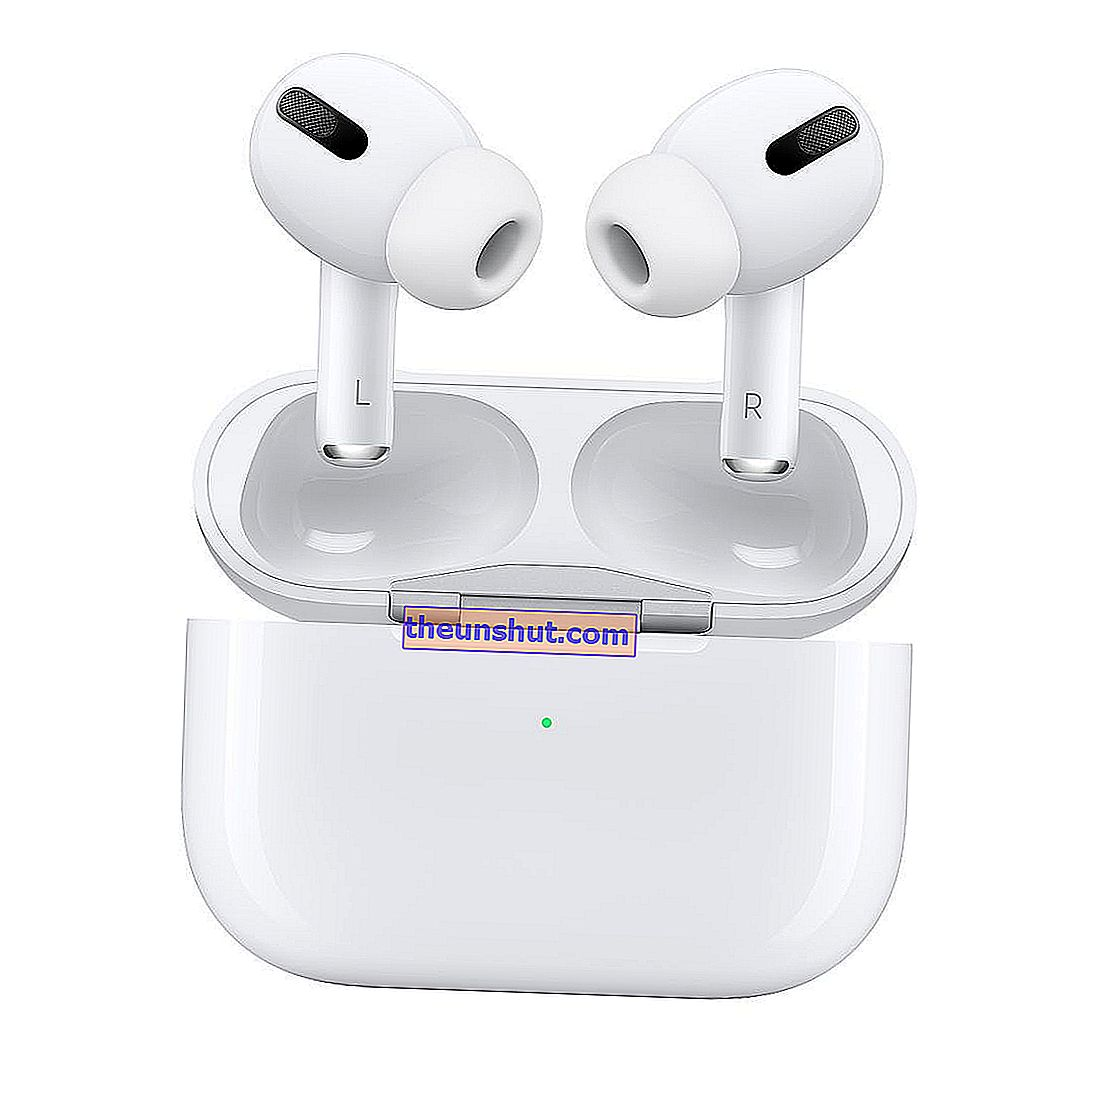 Le migliori alternative agli Airpods su Aliexpress